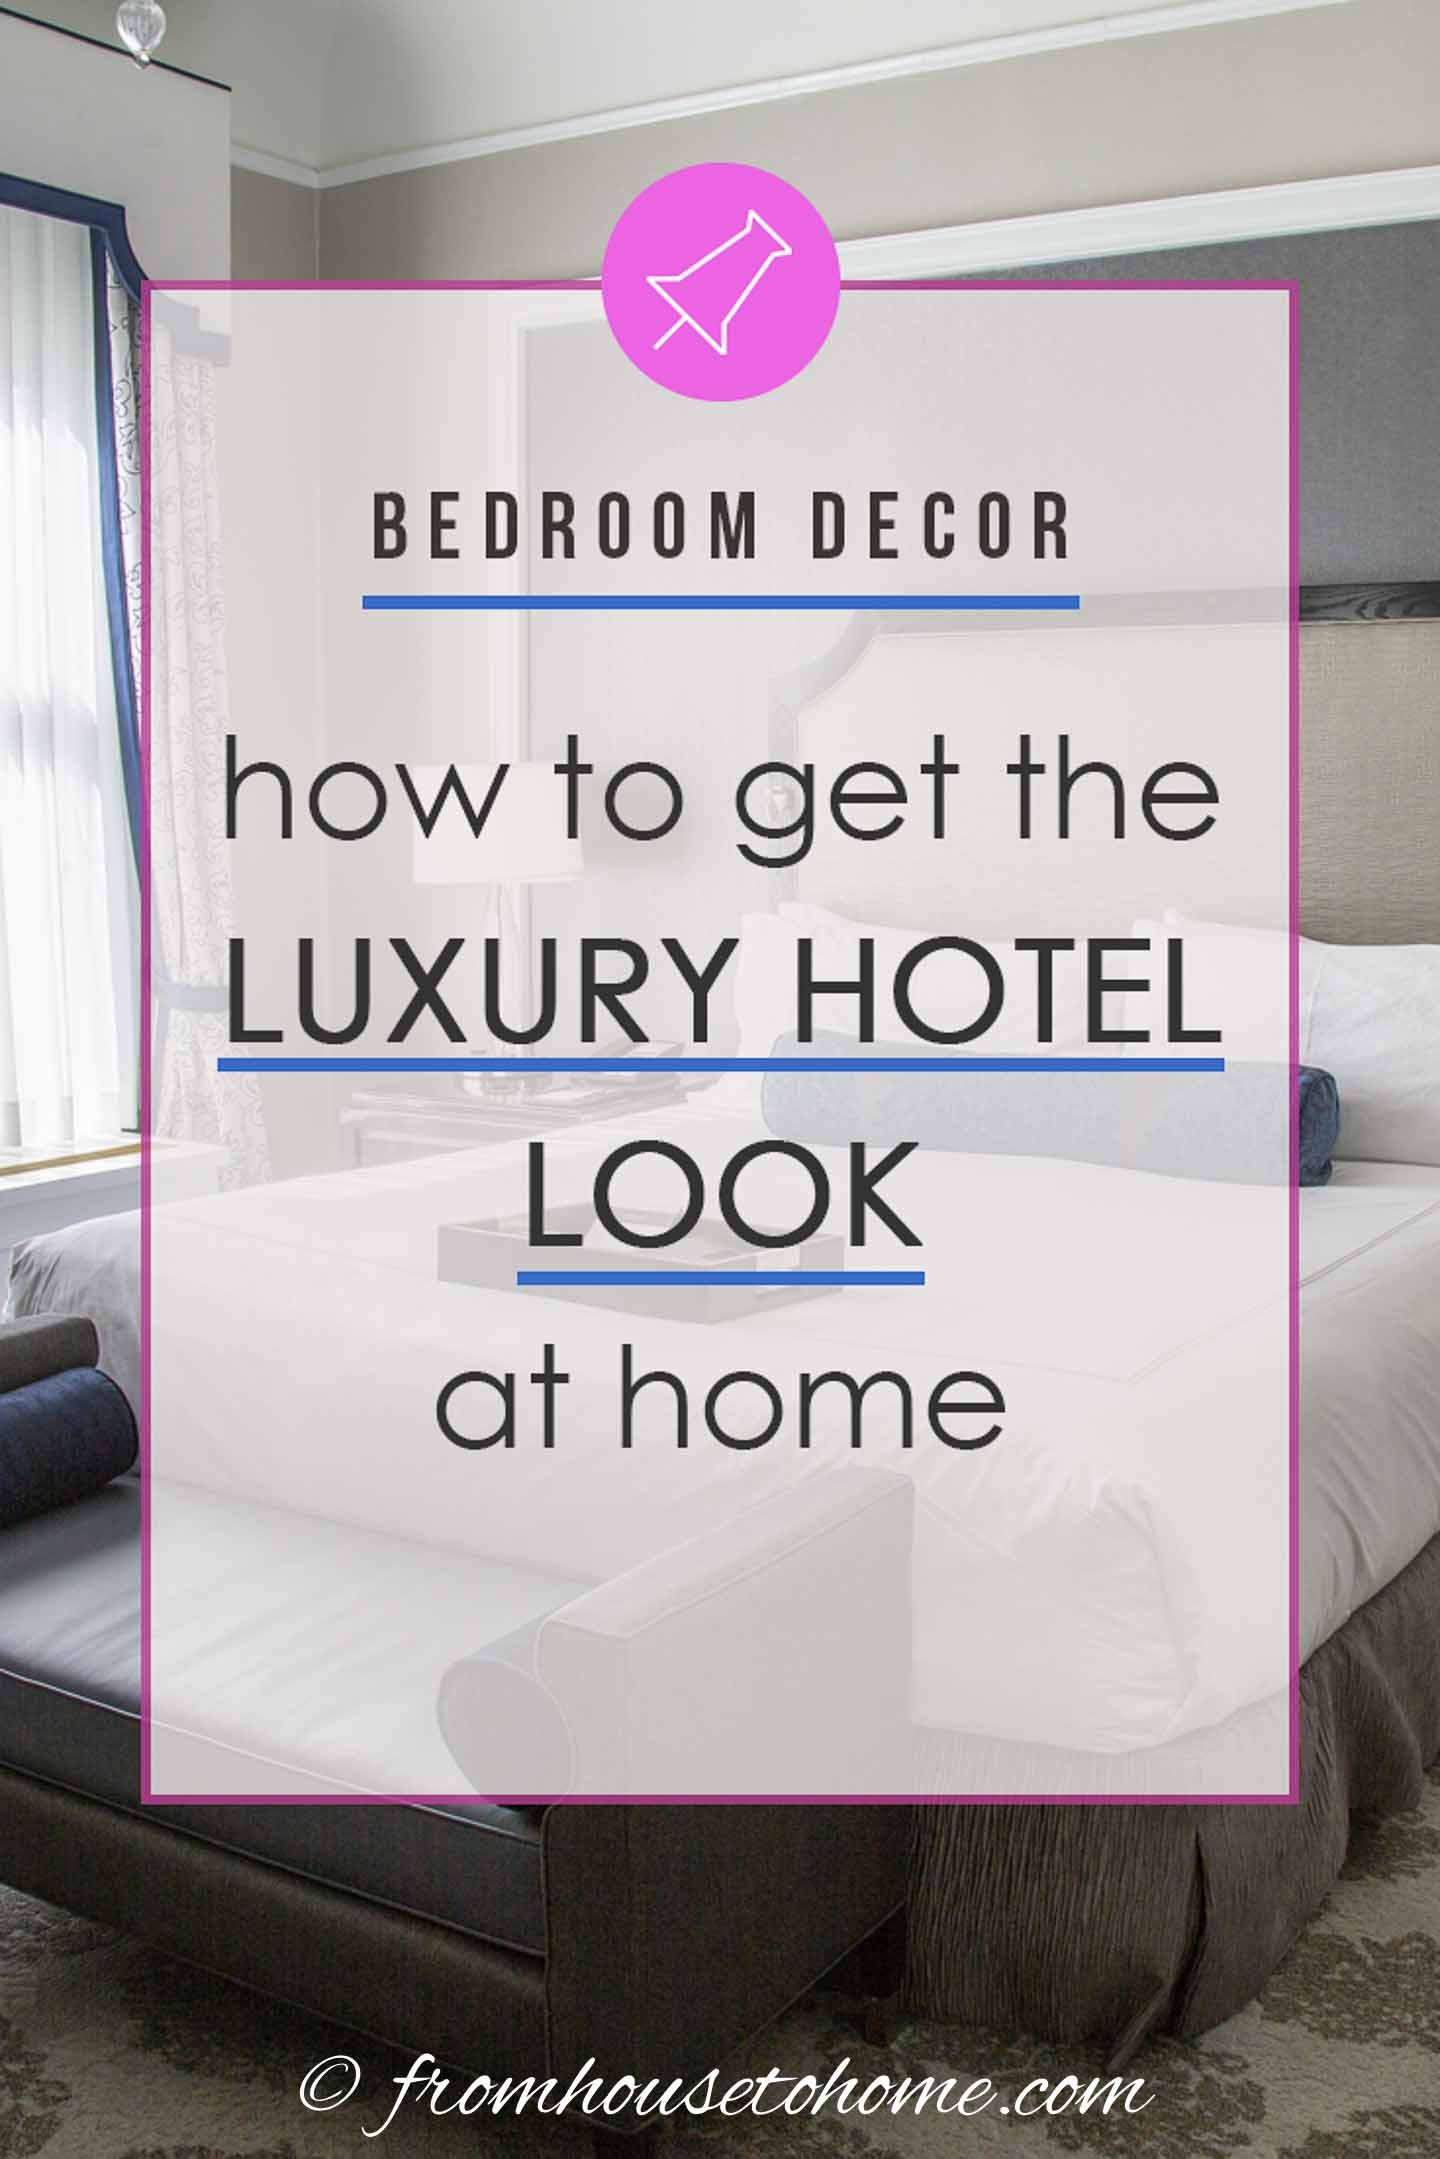 Luxurious Bedroom Ideas: How To Get The Luxury Hotel Look At Home